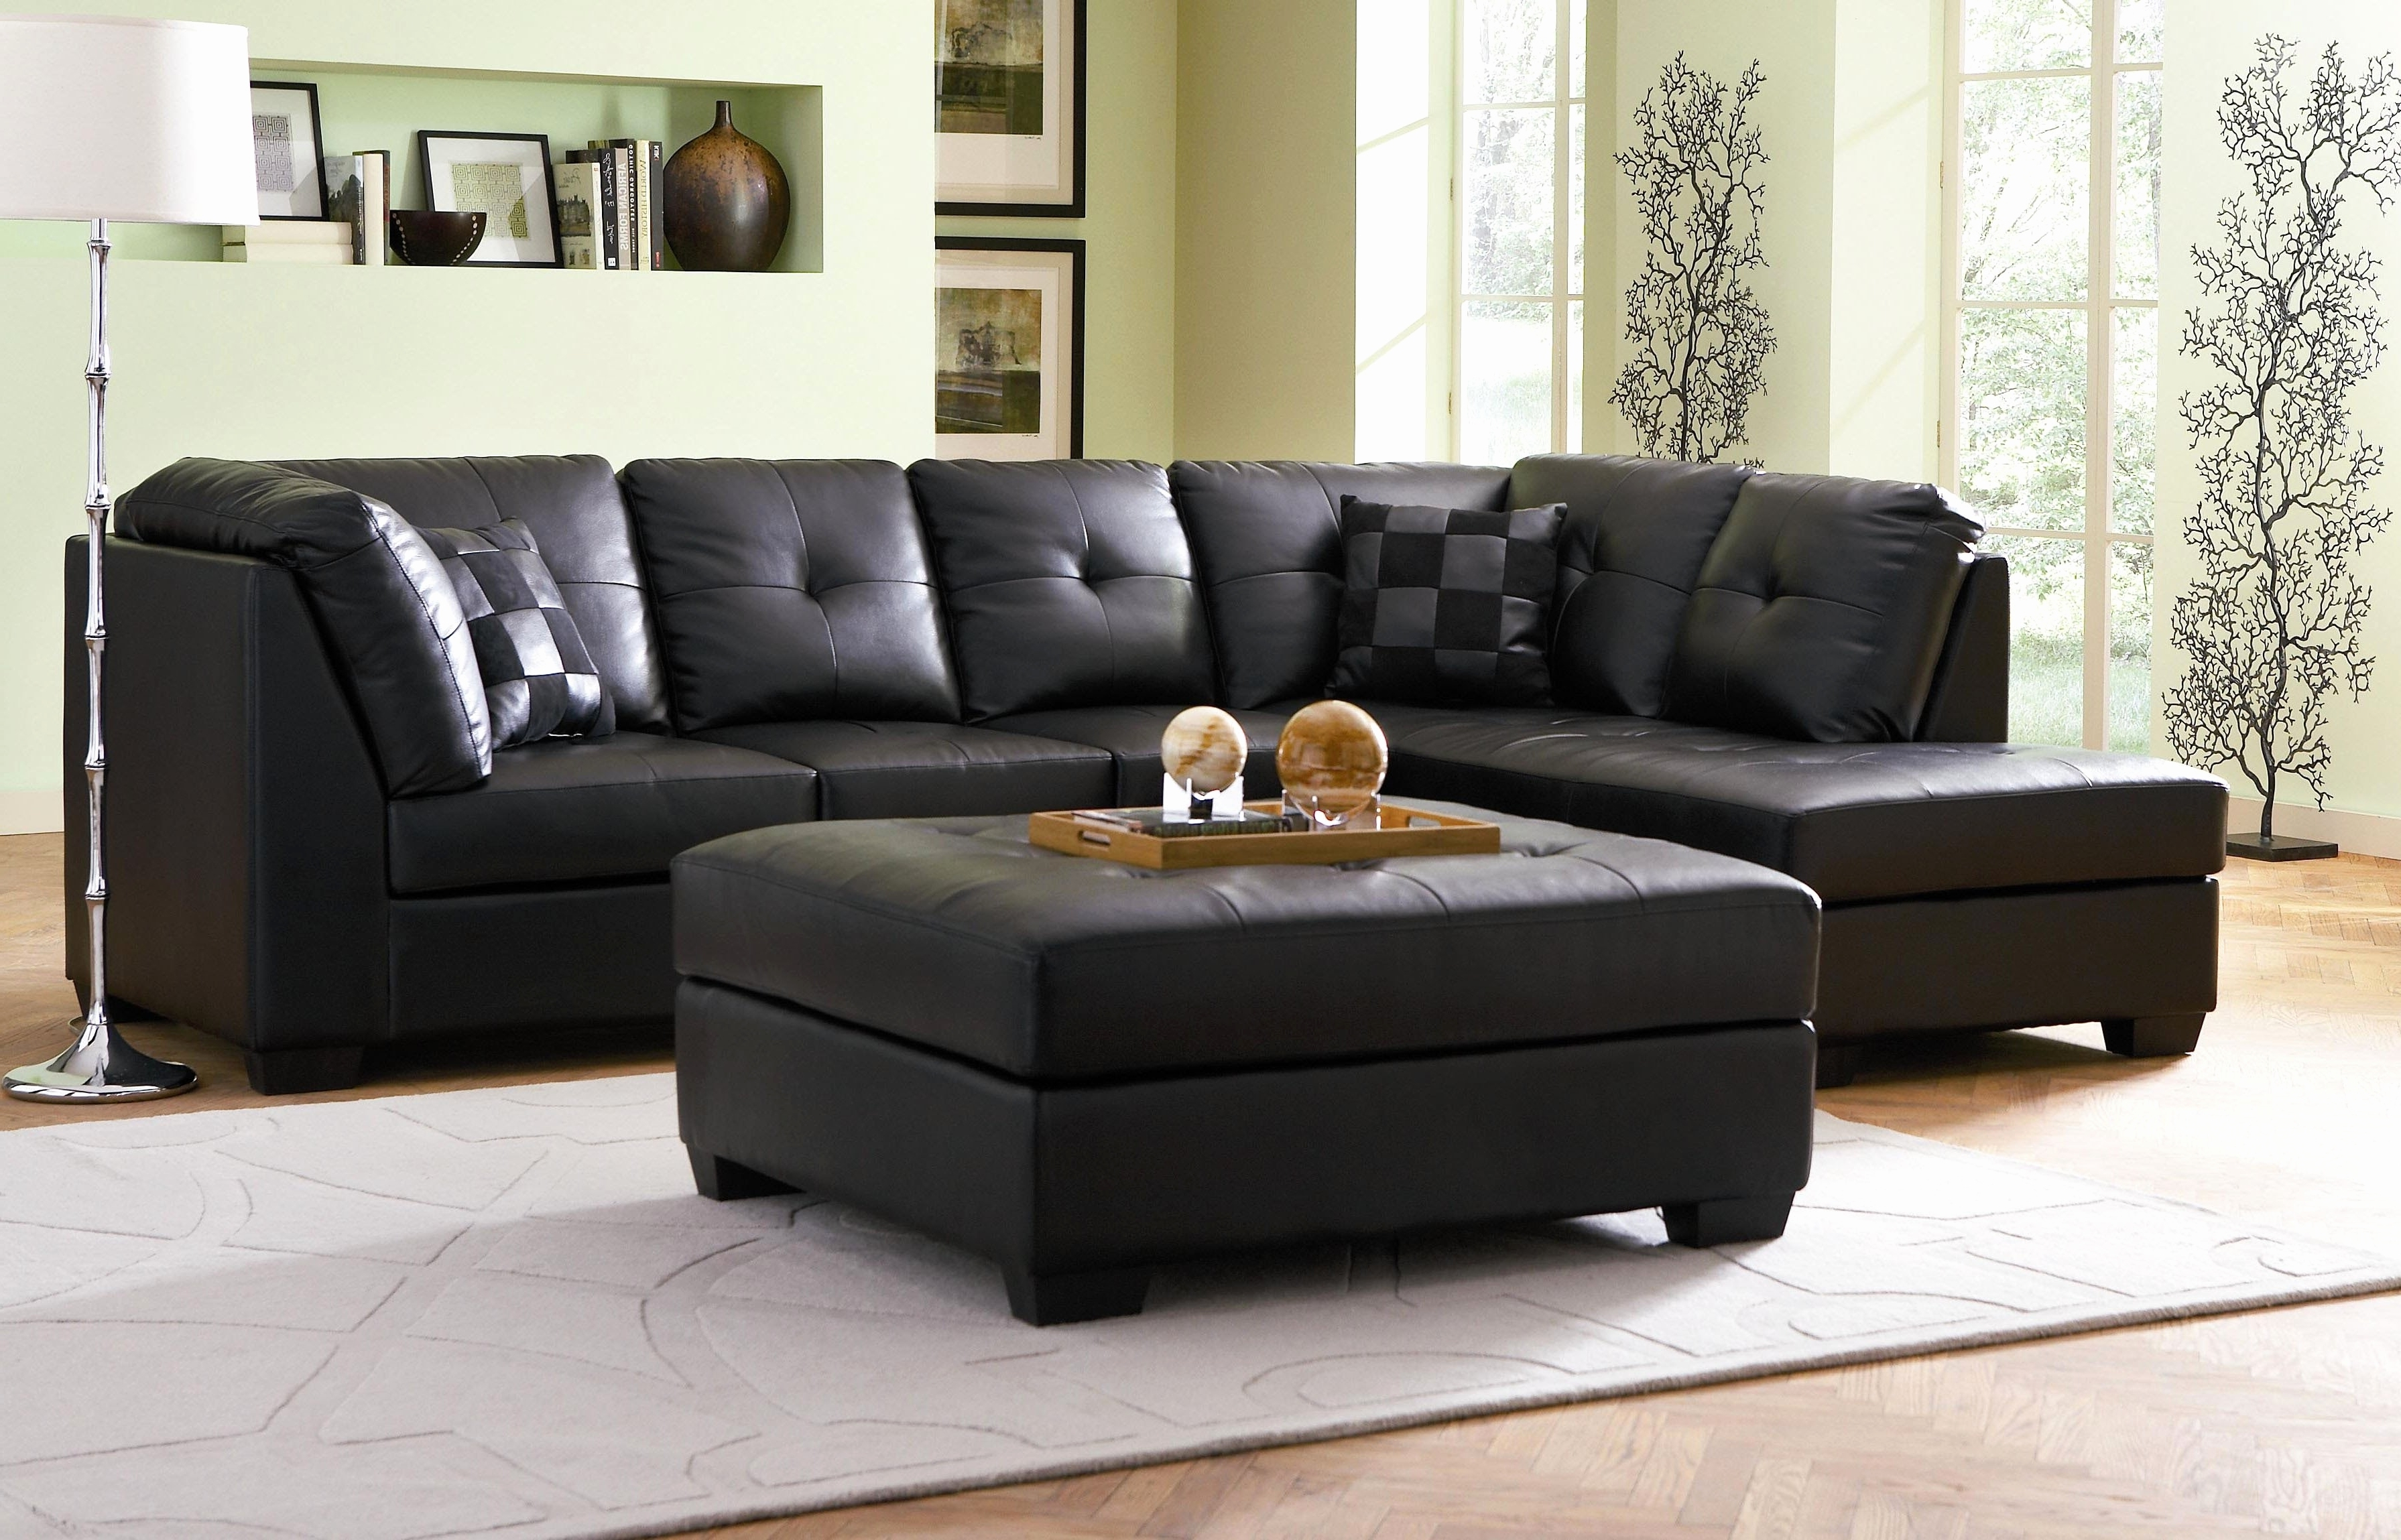 Preferred New Leather Sofas San Antonio 2018 – Couches And Sofas Ideas Intended For Sectional Sofas In San Antonio (View 11 of 20)